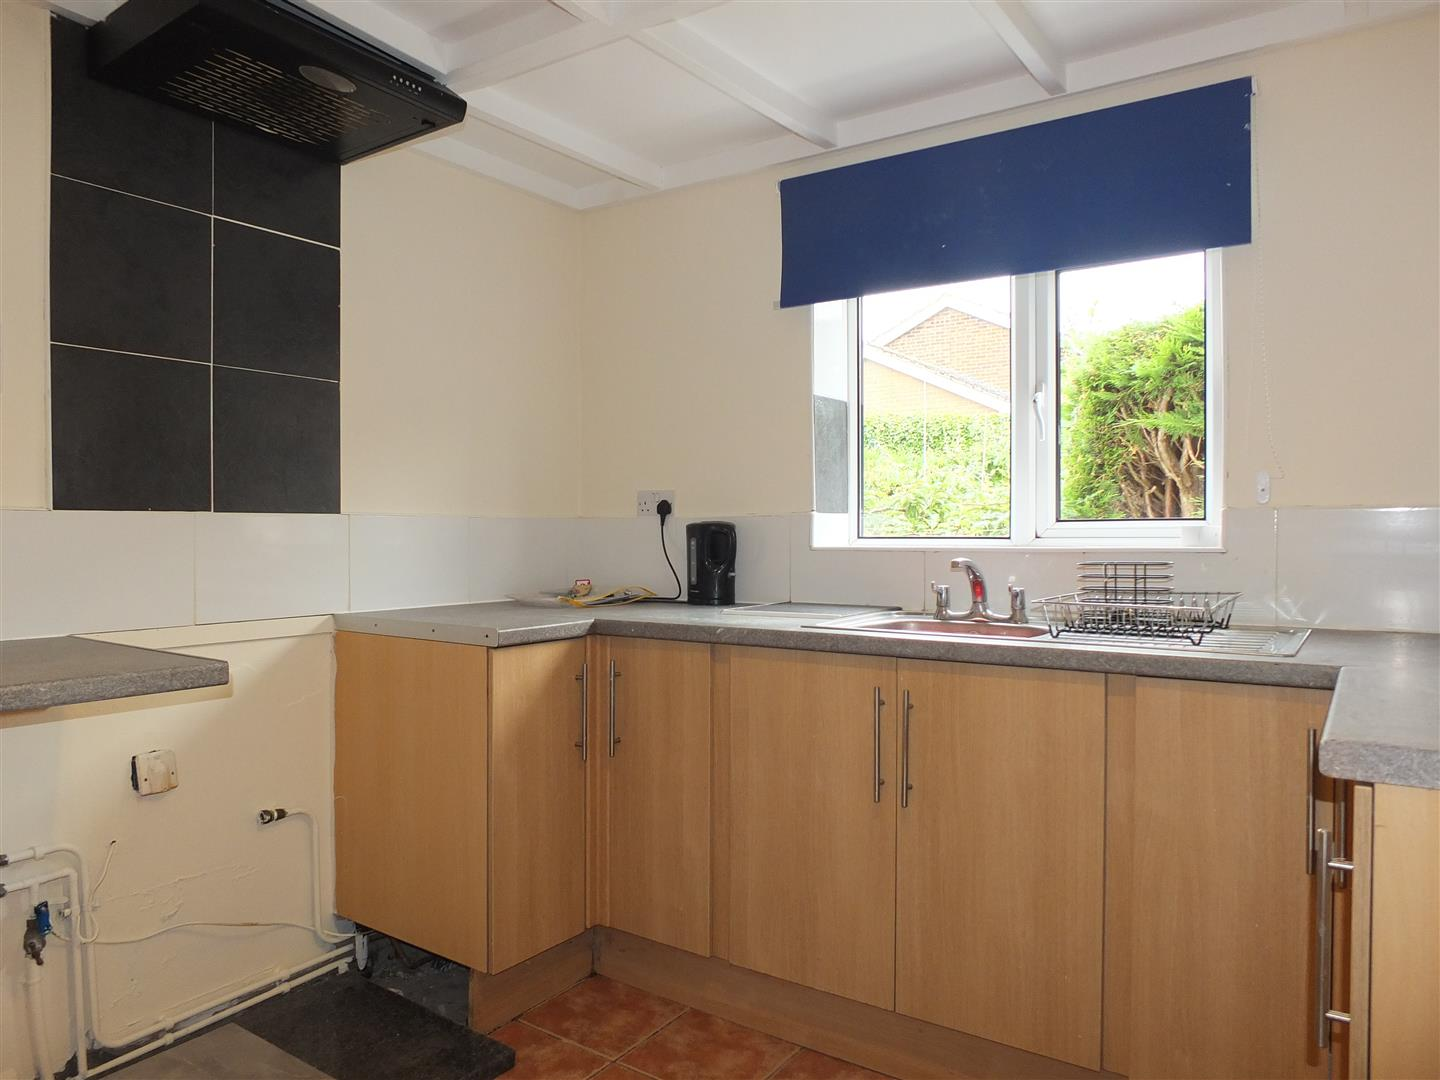 2 bed house to rent in Long Sutton Spalding, PE12 9DH 3